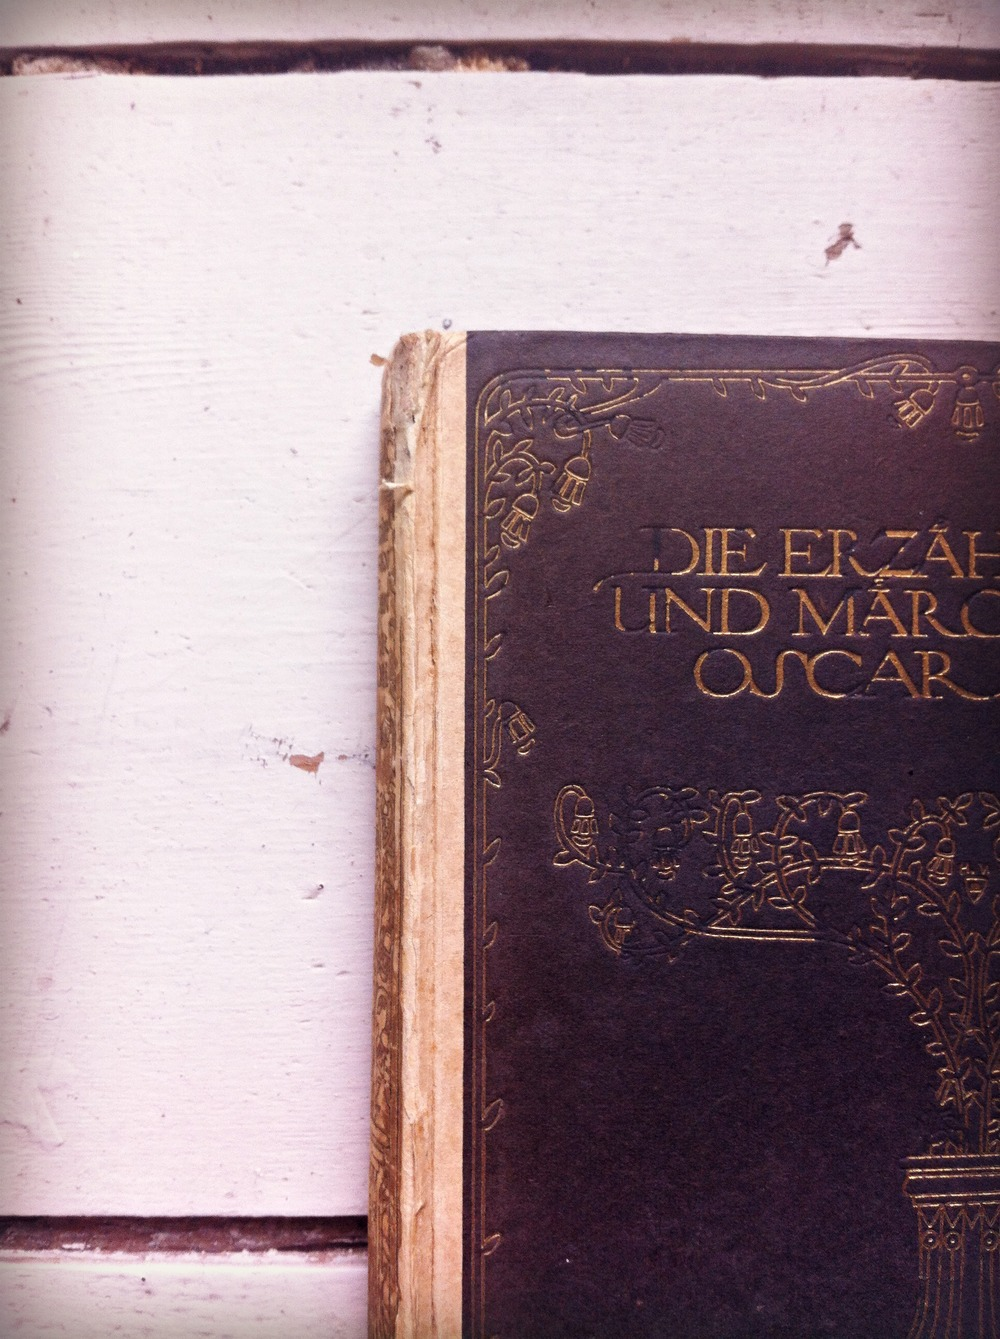 Vintage Oscar Wilde tales and fairy tales in German. Gorgeous gilding on cover.